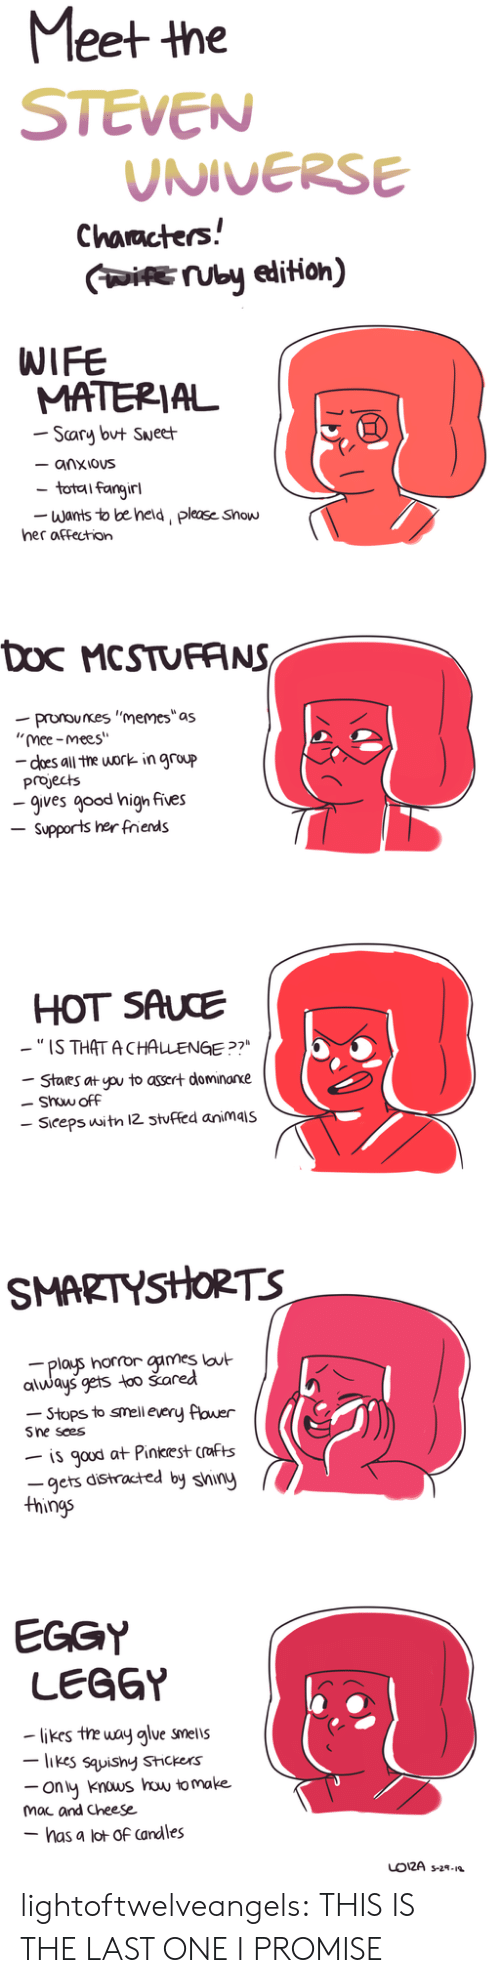 "Steven Universe: Meet the  STEVEN  UNIVERSE  Characters!  IUby edition)  WIFE  MATERIAL  Scary but Sueet  - anxious  total fangirl  Wants to be held, please Show  her affection  Doc MCSTUFANS  -pronounes ""memes""as  ""mee-mees""  - does all the work in group  projects  -gives good high fives  Supports her frends  HOT SAUCE  -""IS THAT ACHALENGE ?7  Stares at pu to assert dominarxe  Show off  Siceps witn 12 3tuffed animais  SMARTYSHORTS  plays horror games lout  always gets too šared  -Stops to smell every flower  Sne sees  is gaud at Pinkrest crafts  -gets distracted by shiny  things  EGGY  LEGGY  likes the way alue smells  -likes sauishy Stickers  ony knous how to make  mac and Cheese  - has a lot of Candles  LO12A s-2- lightoftwelveangels:  THIS IS THE LAST ONE I PROMISE"